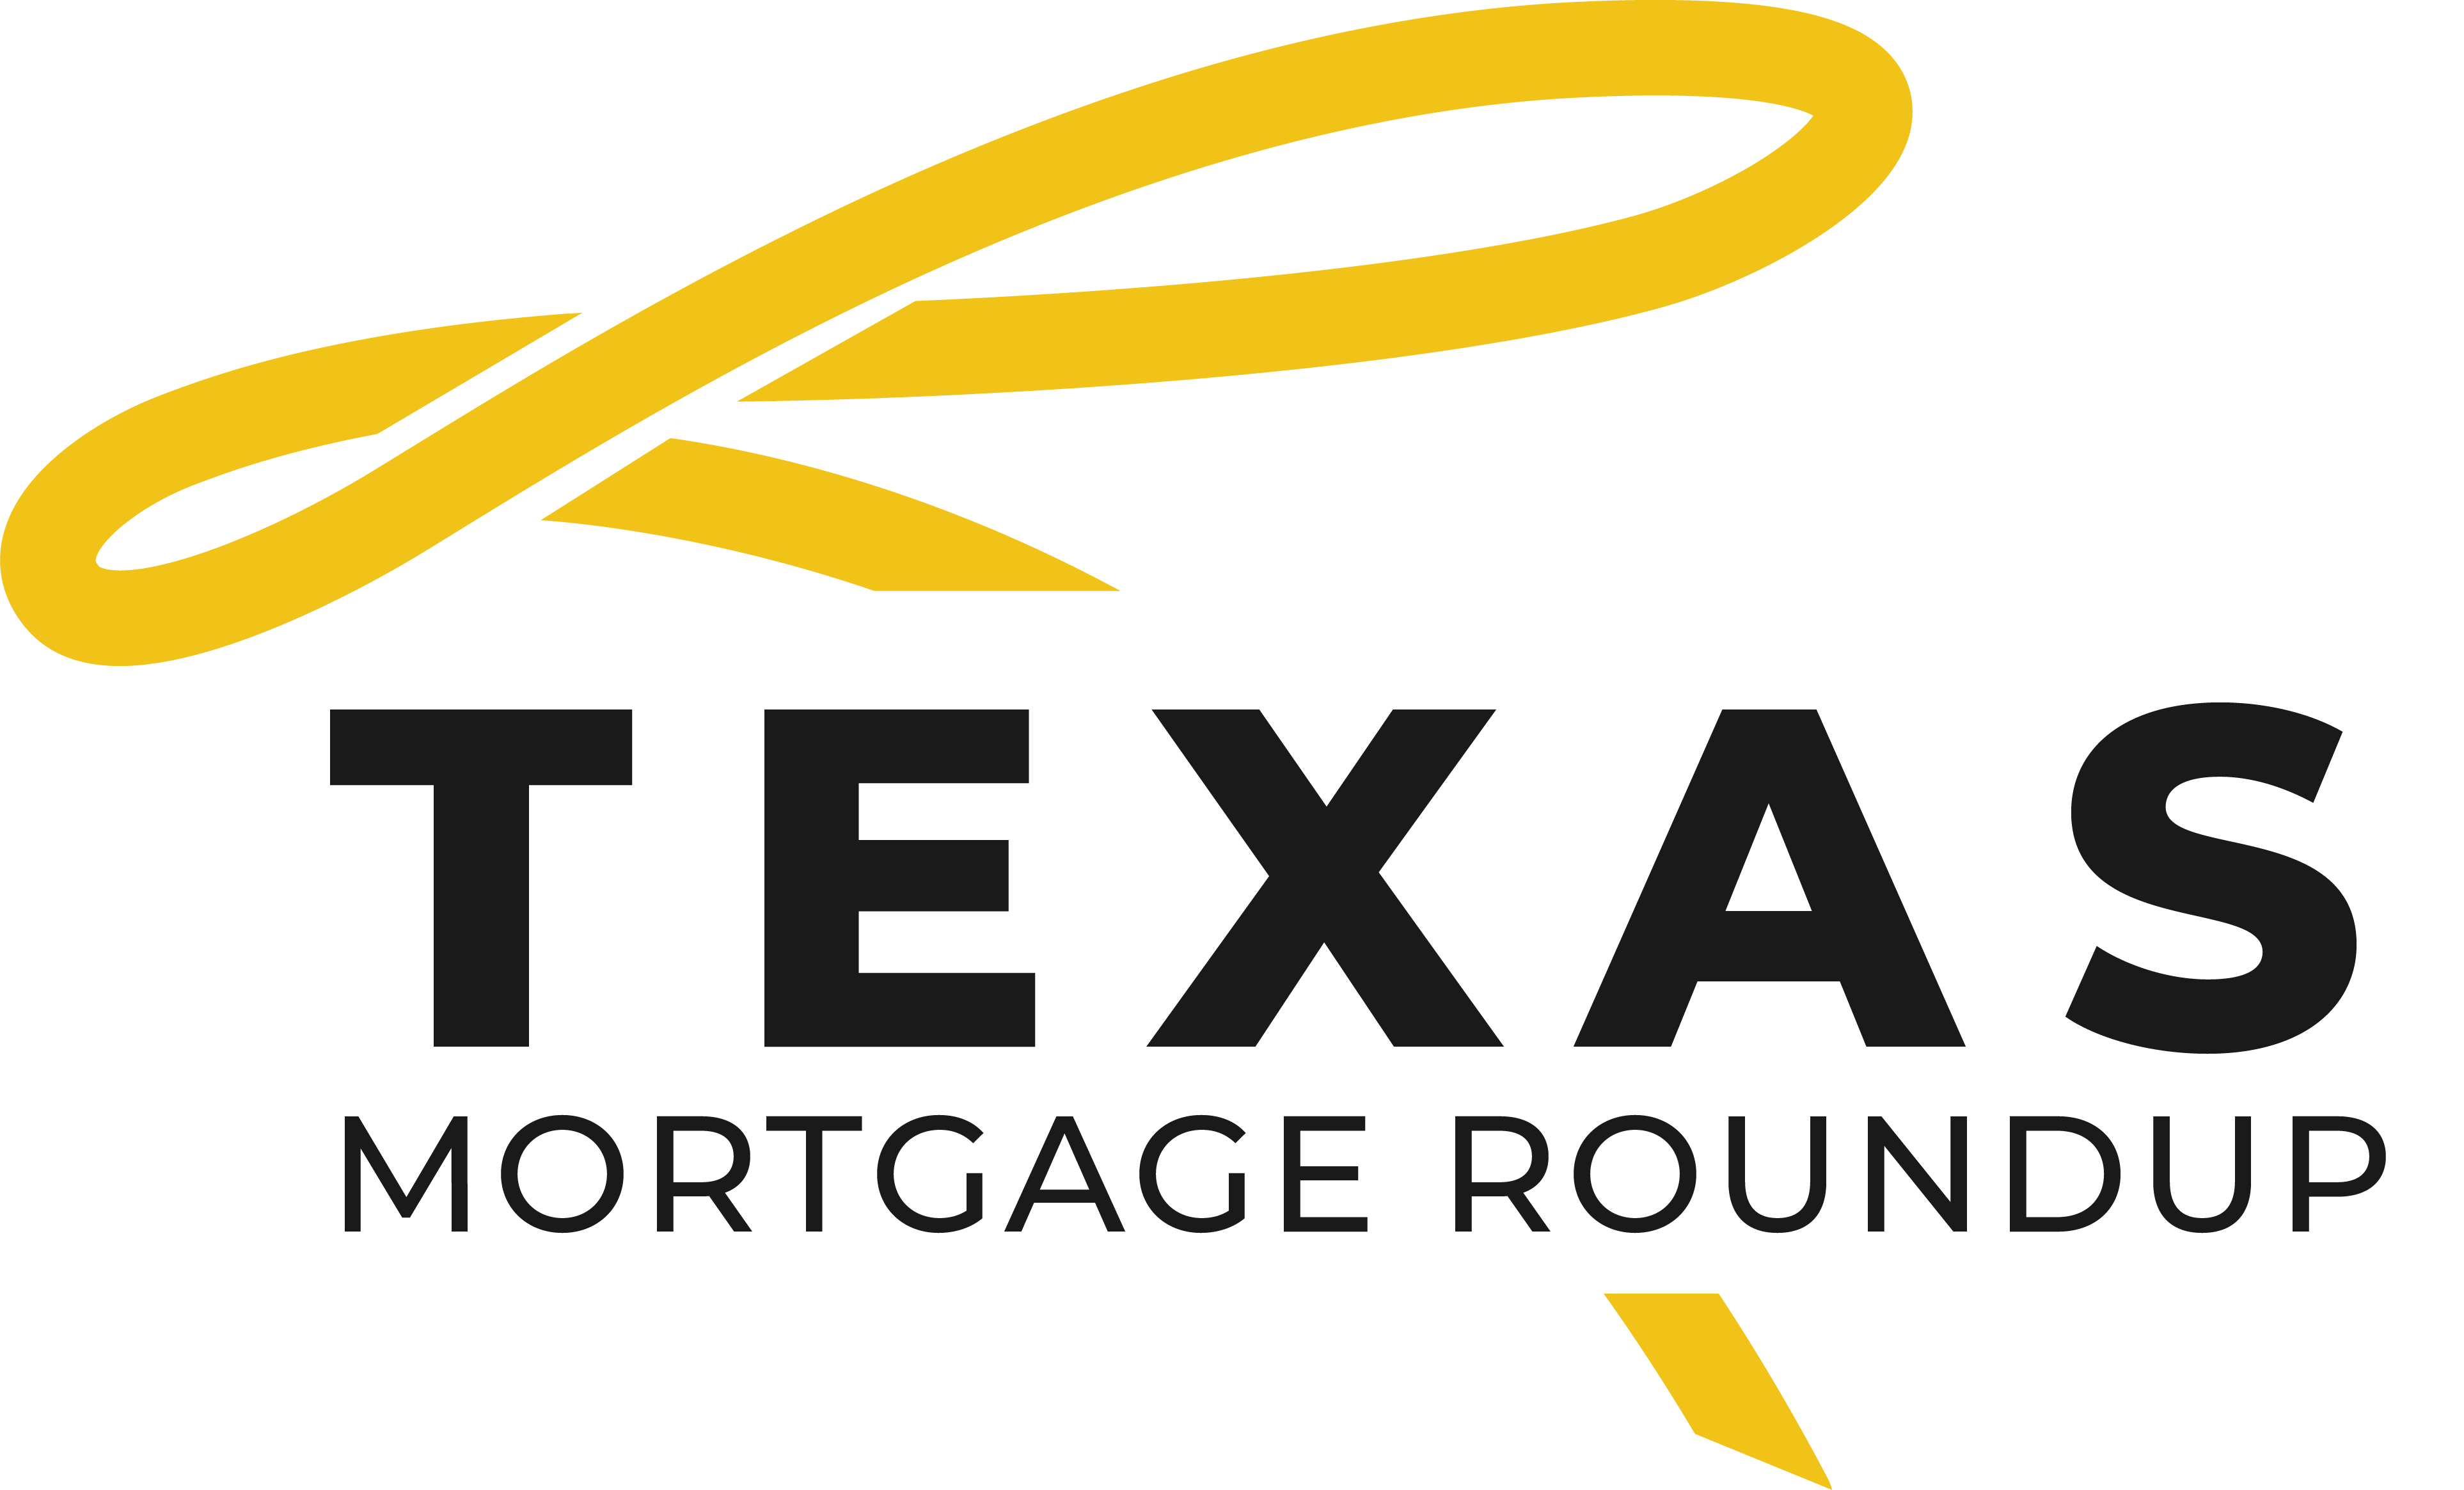 On Thursday, September 10, the 2020 Texas Mortgage Roundup Dallas will be held at the DoubleTree by Hilton Dallas, located at 4099 Valley View Lane in Dallas, Texas.